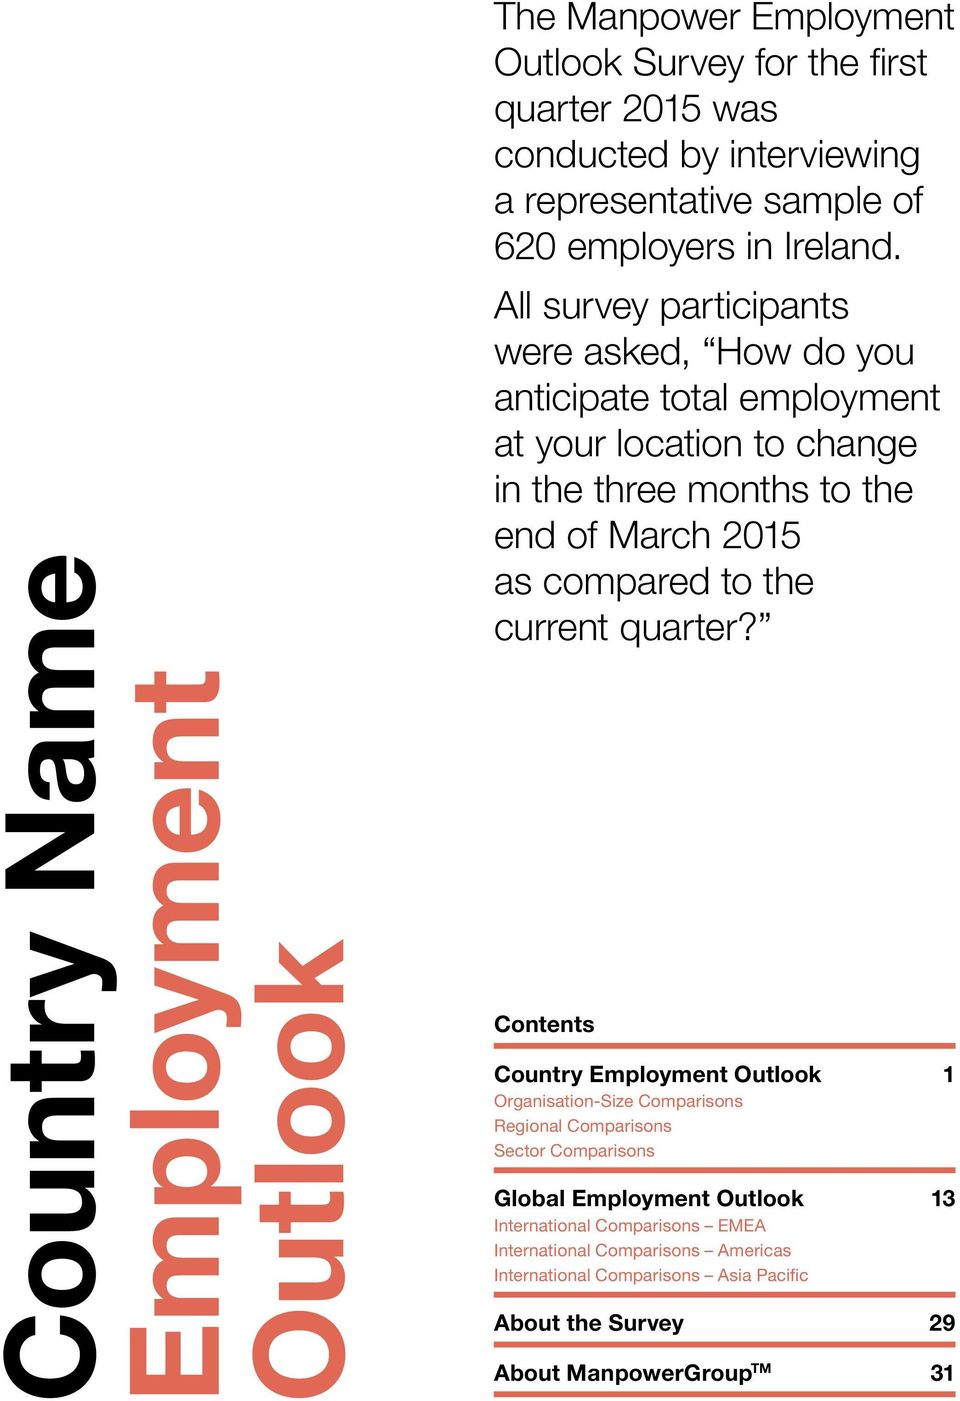 All survey participants were asked, How do you anticipate total employment at your location to change in the three months to the end of March 215 as compared to